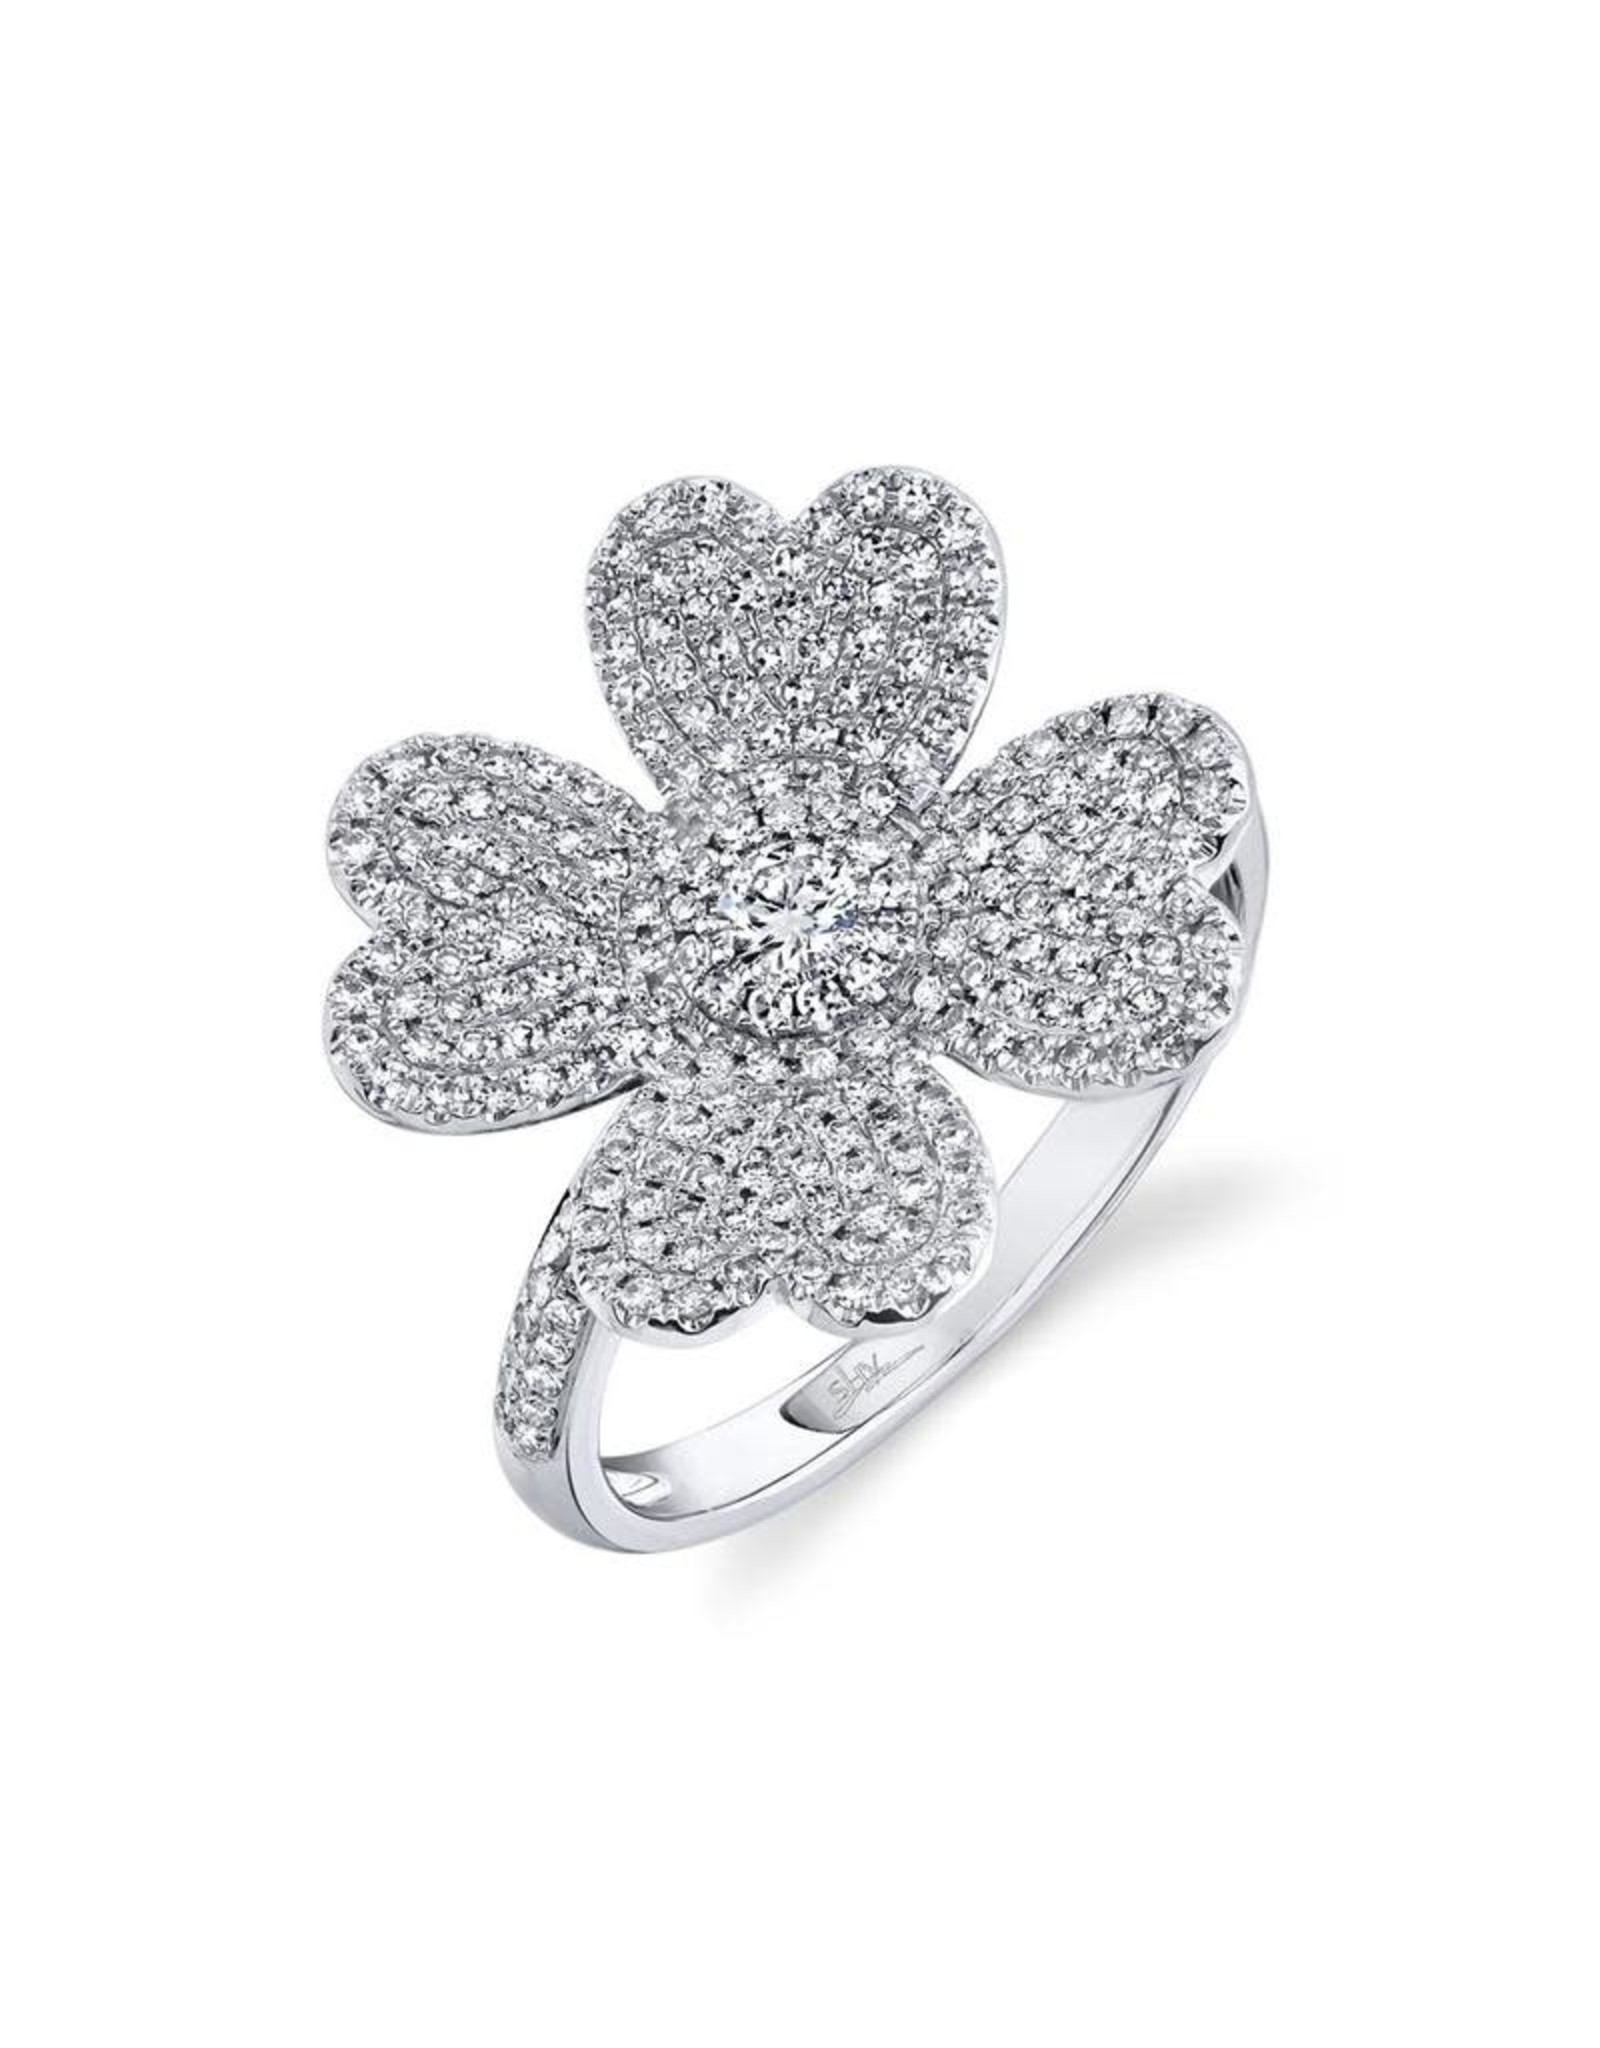 14K White Gold Pave Diamond Lucky Clover Ring, D: 0.63ct